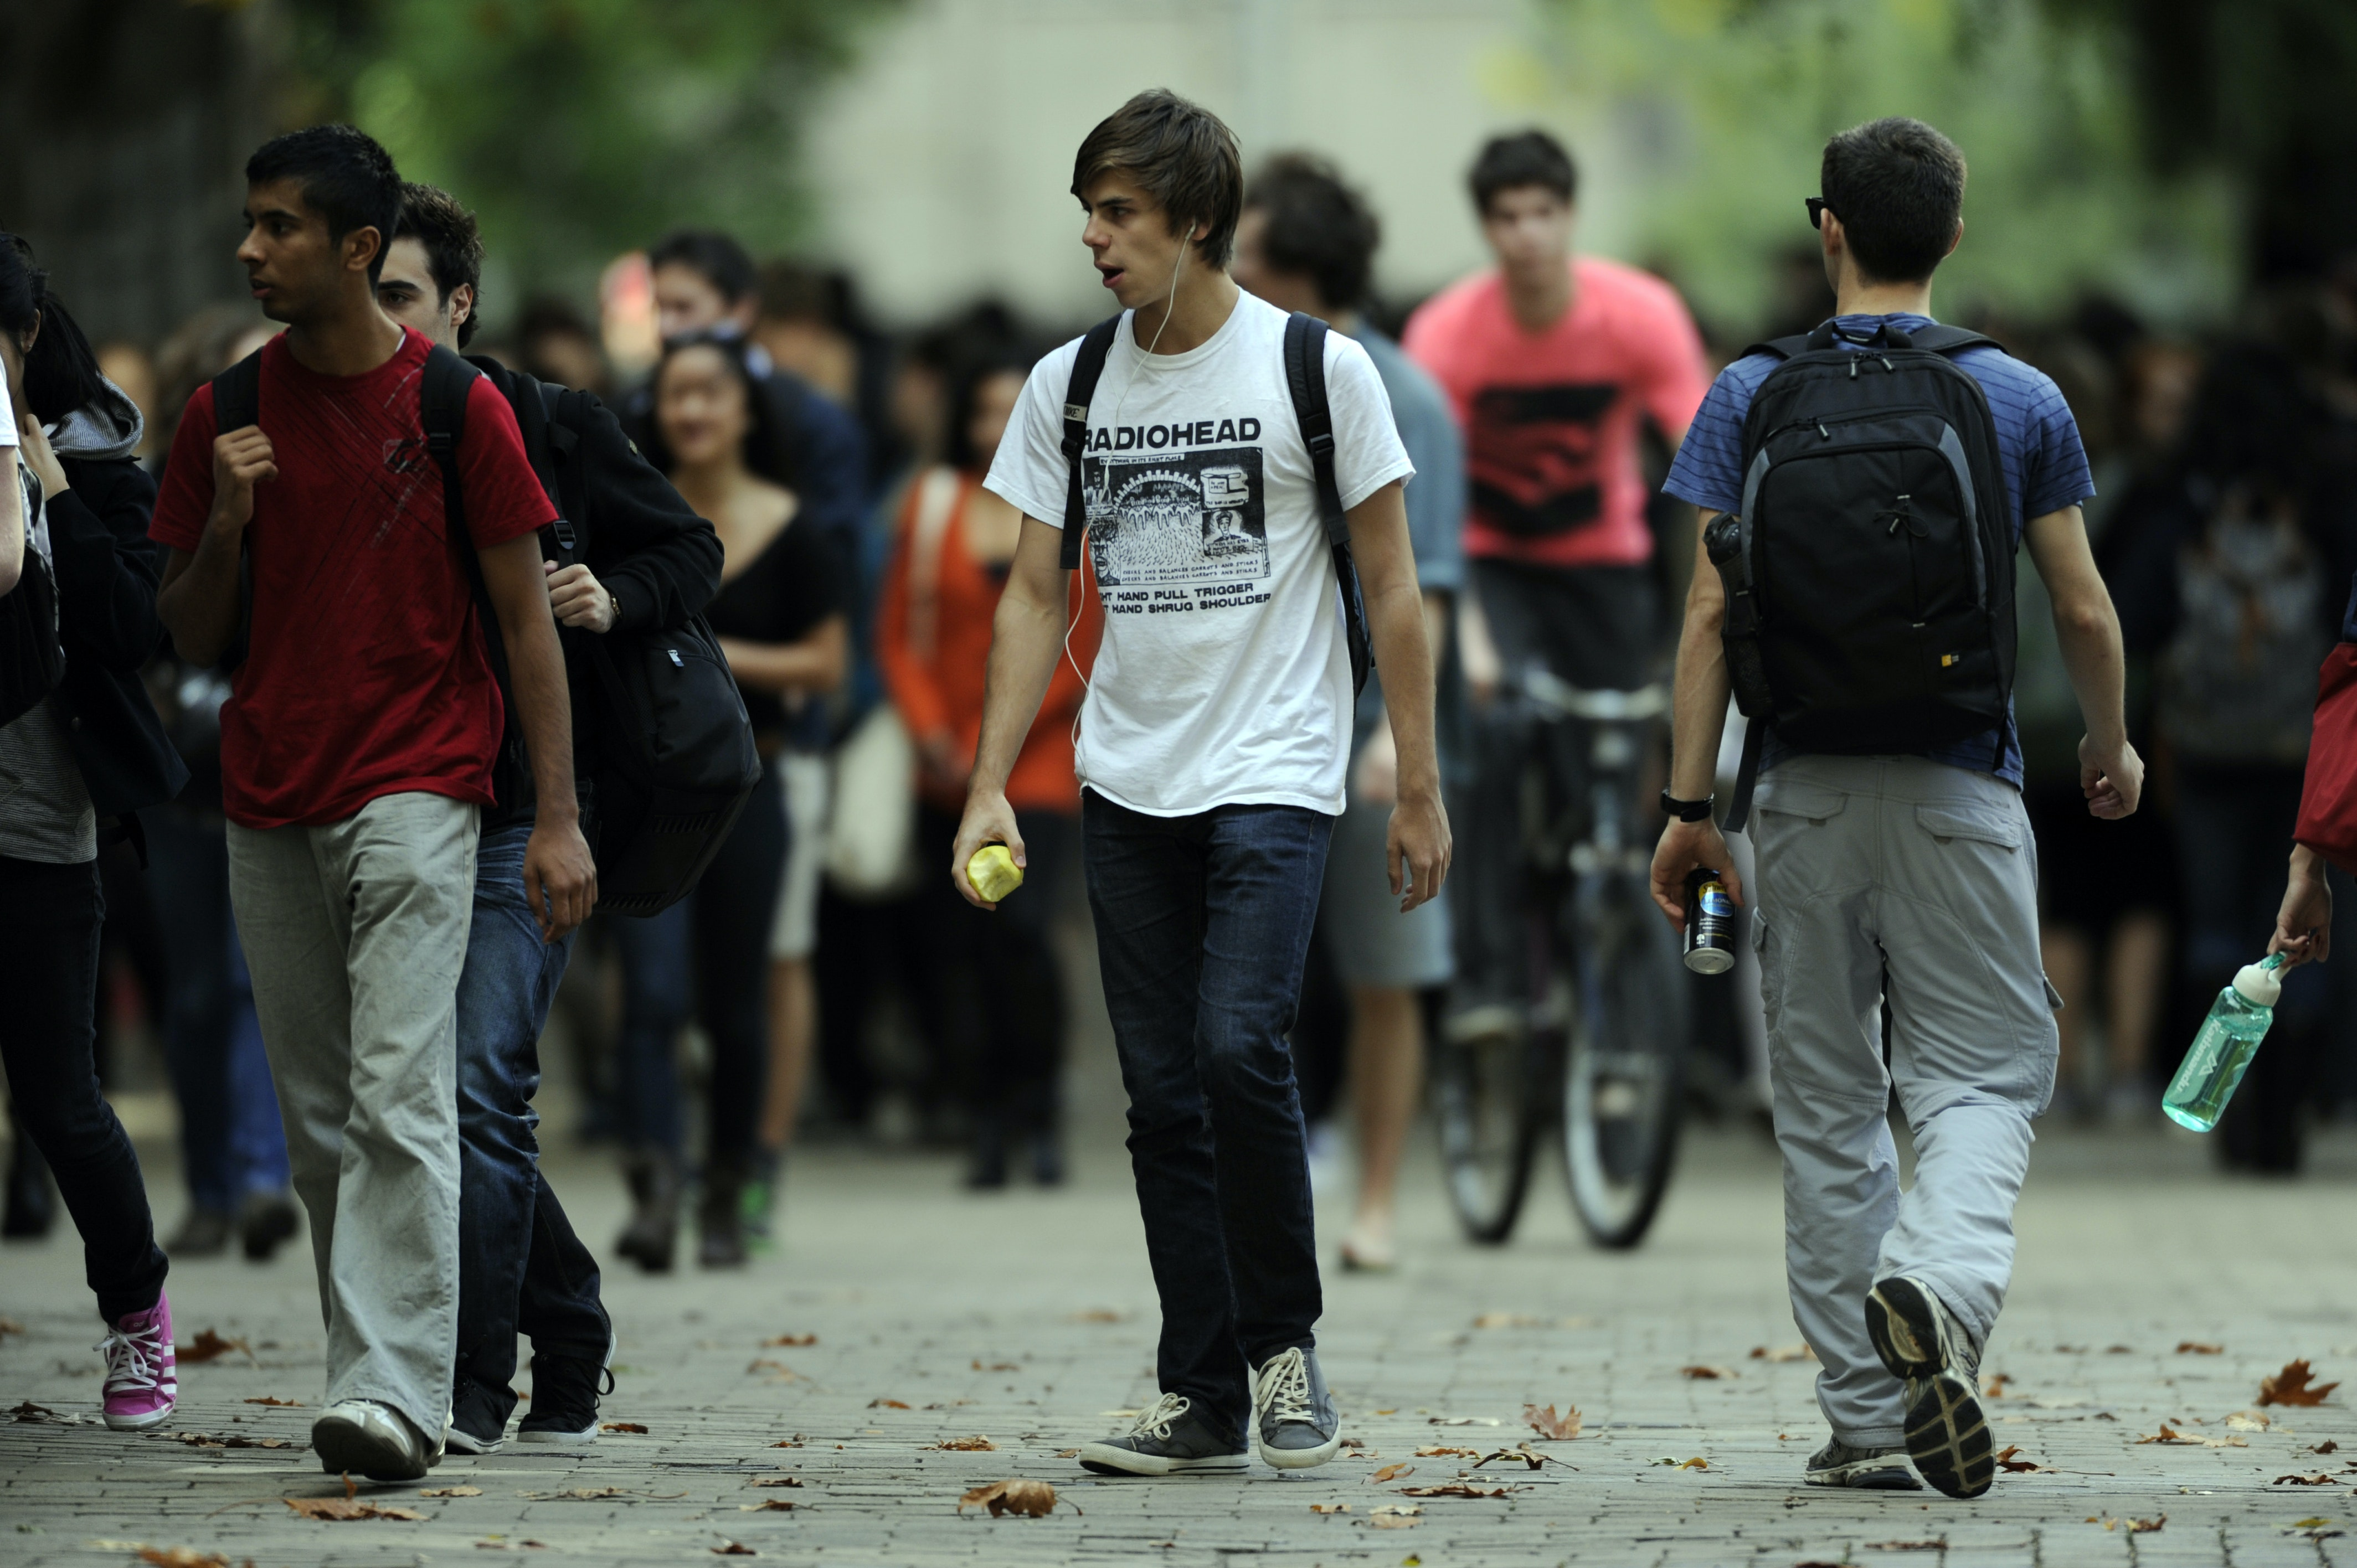 Fees and higher education: does social class make a difference?